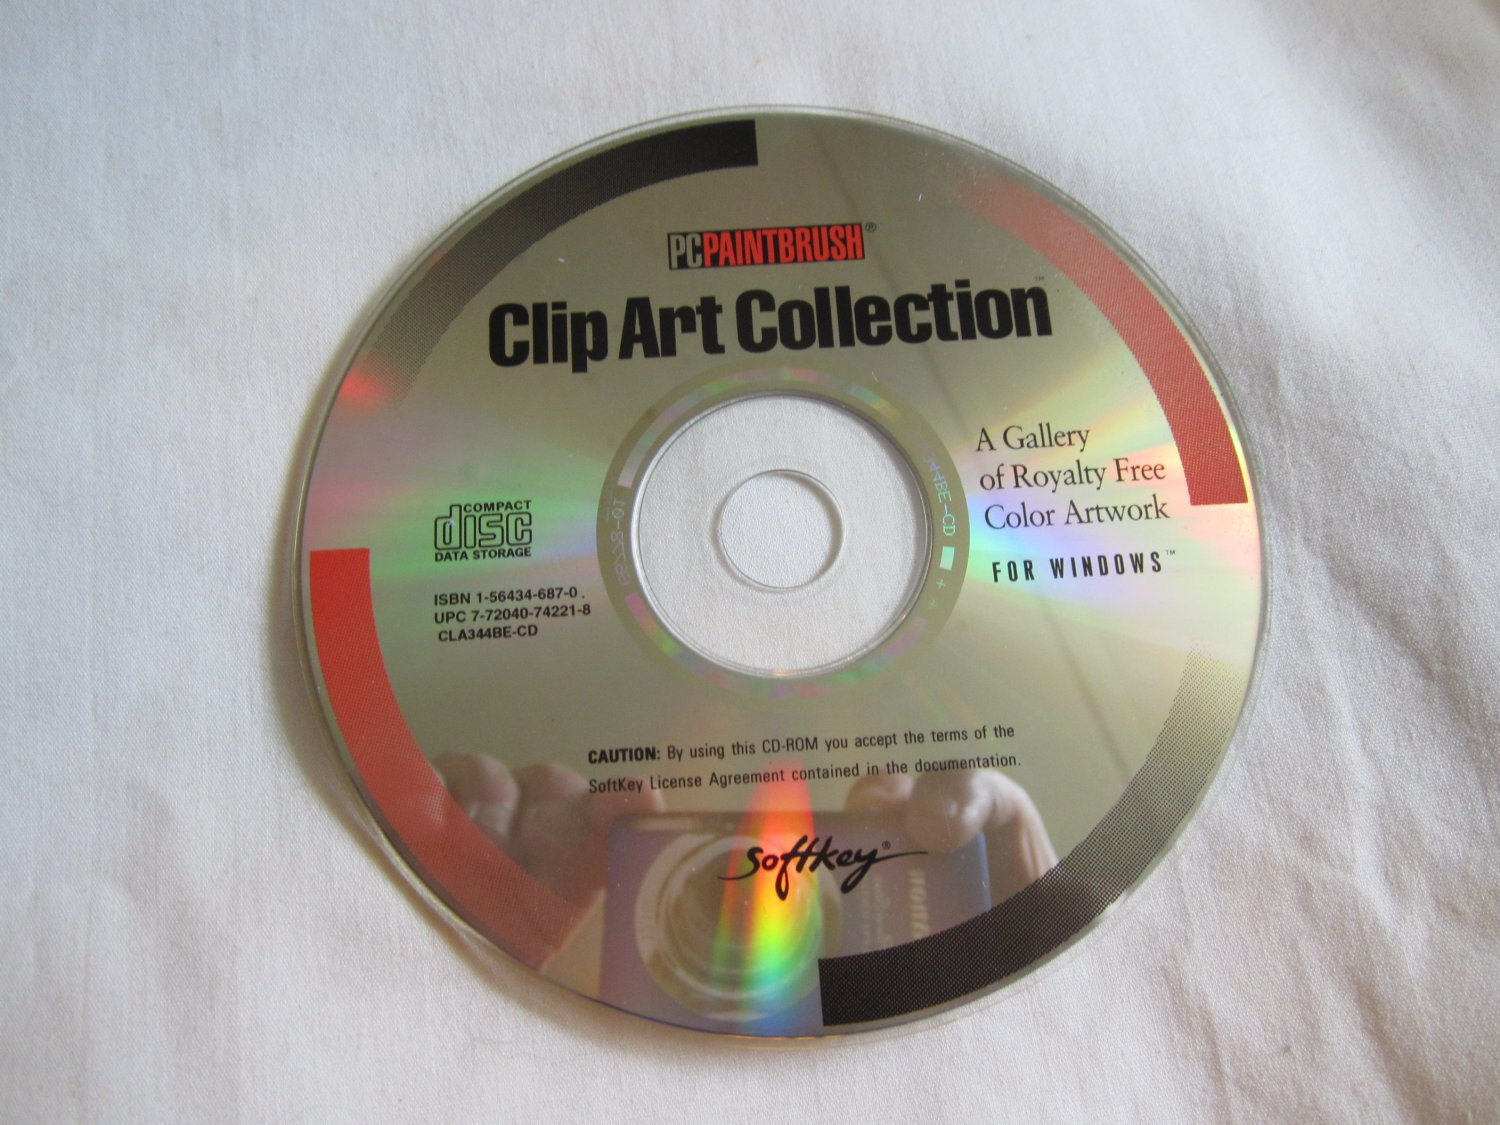 PC Paintbrush Clip Art Collection CD ROM  royalty free color artwork